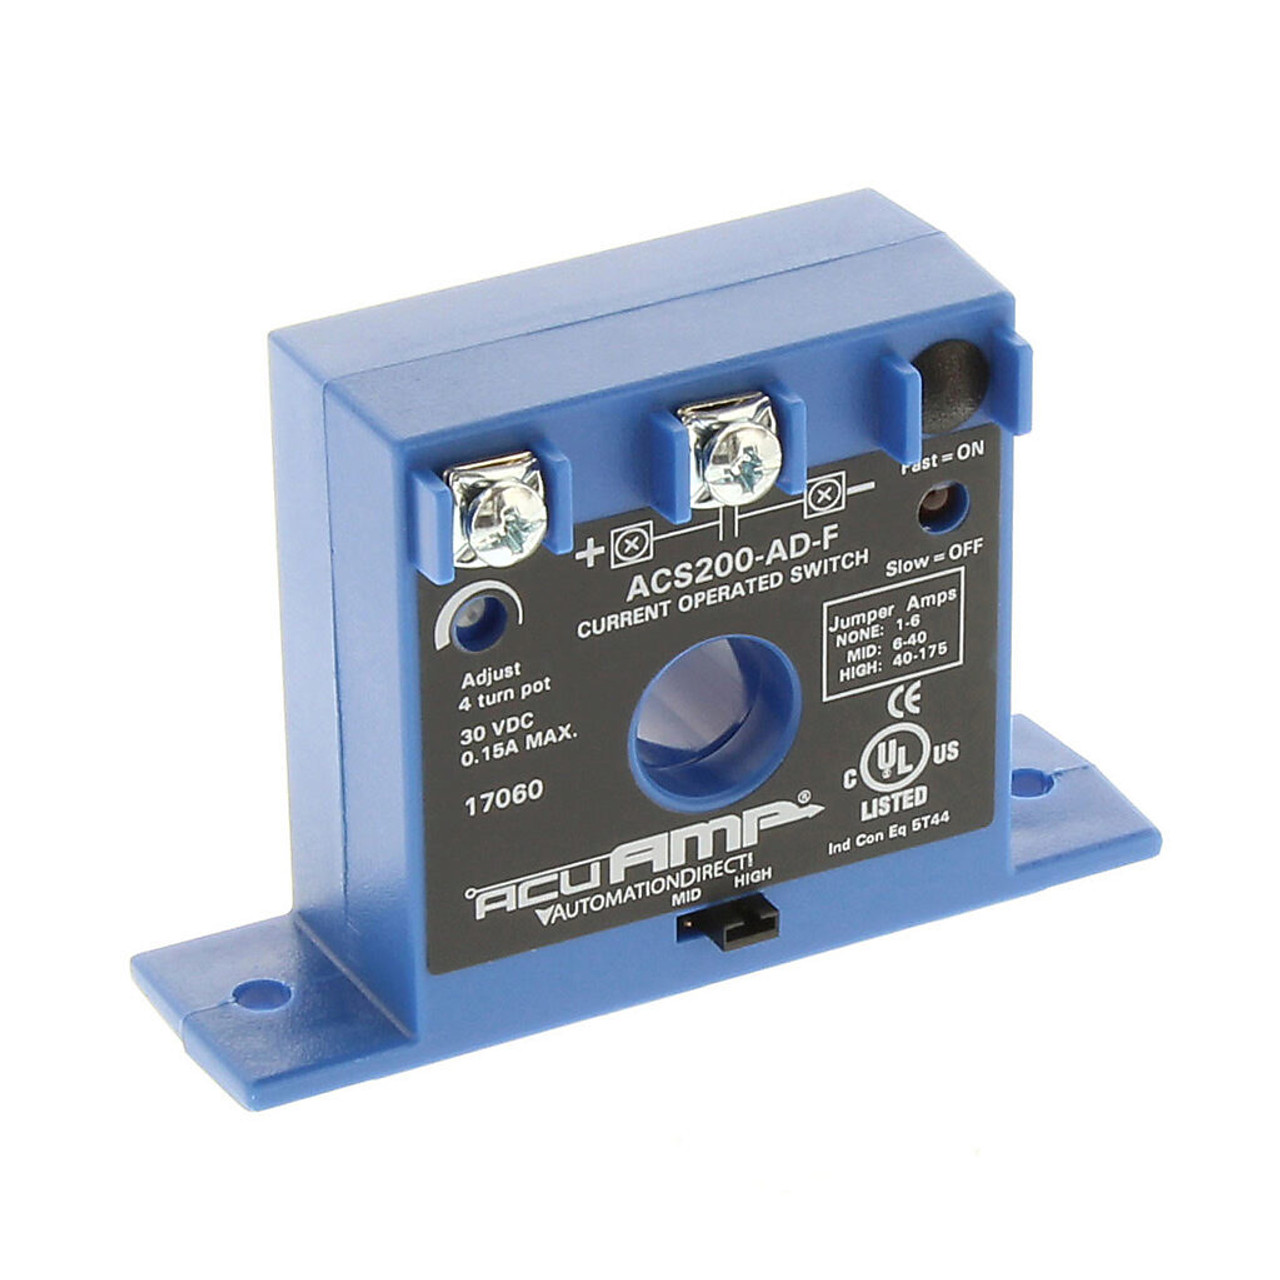 Automation Direct AcuAMP Current Switch ACS200-AD-F